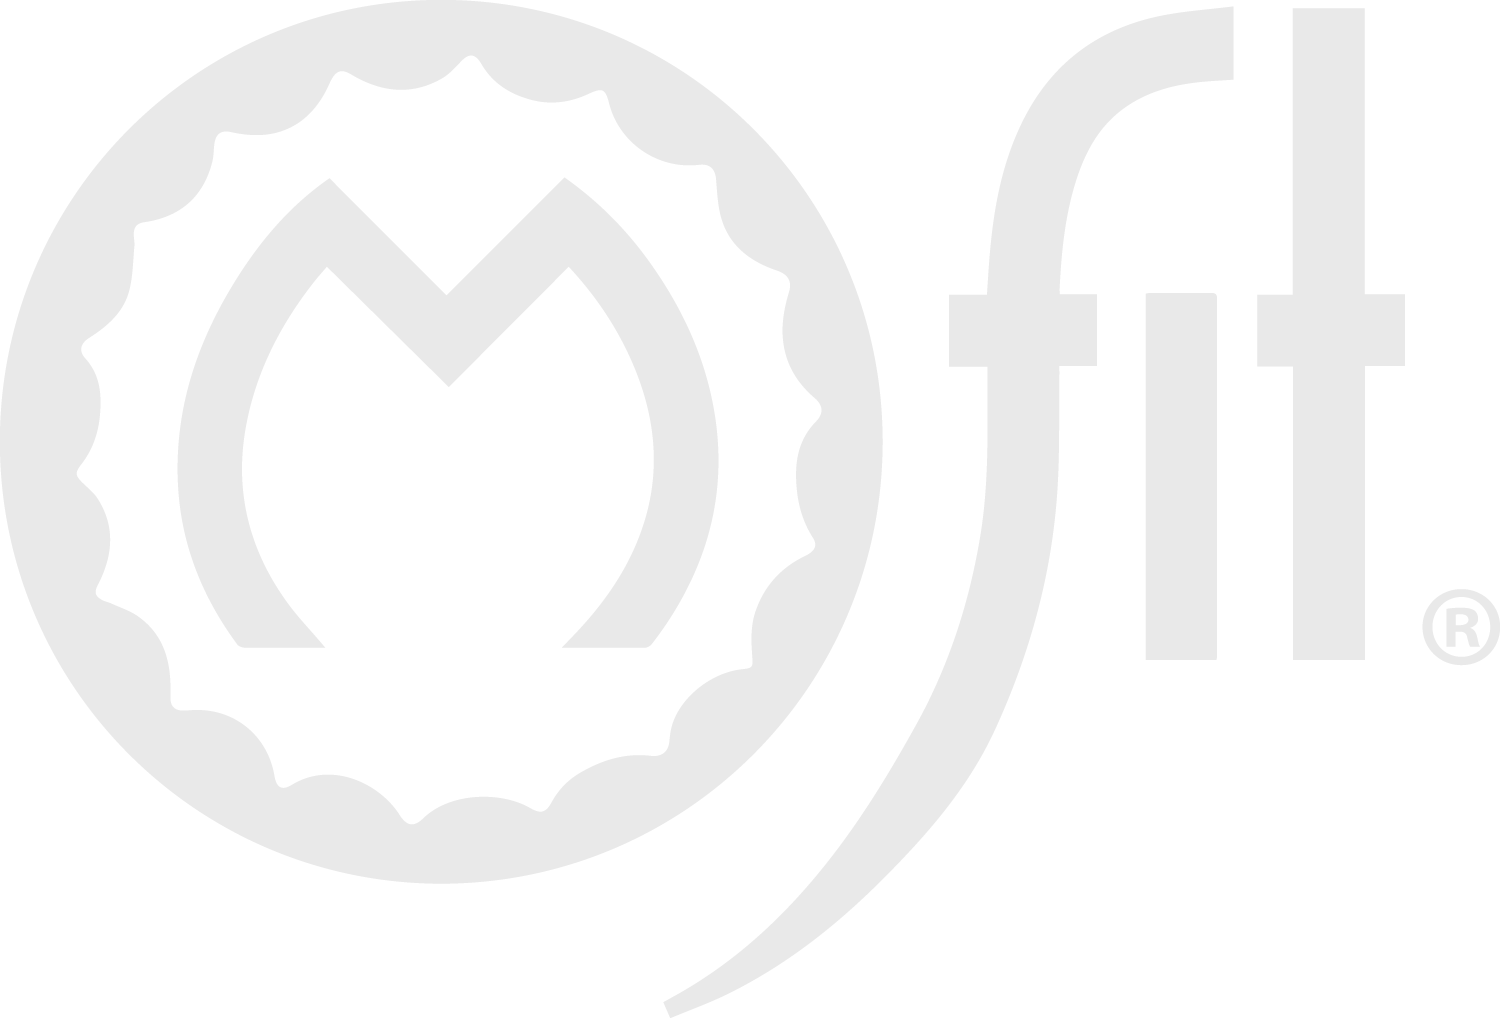 Logo for the brand M Fit. It is a widened letter M that is capitalized and surrounded in a circle meant to simulate a wedding band. Next to it are the lower case letters f i t